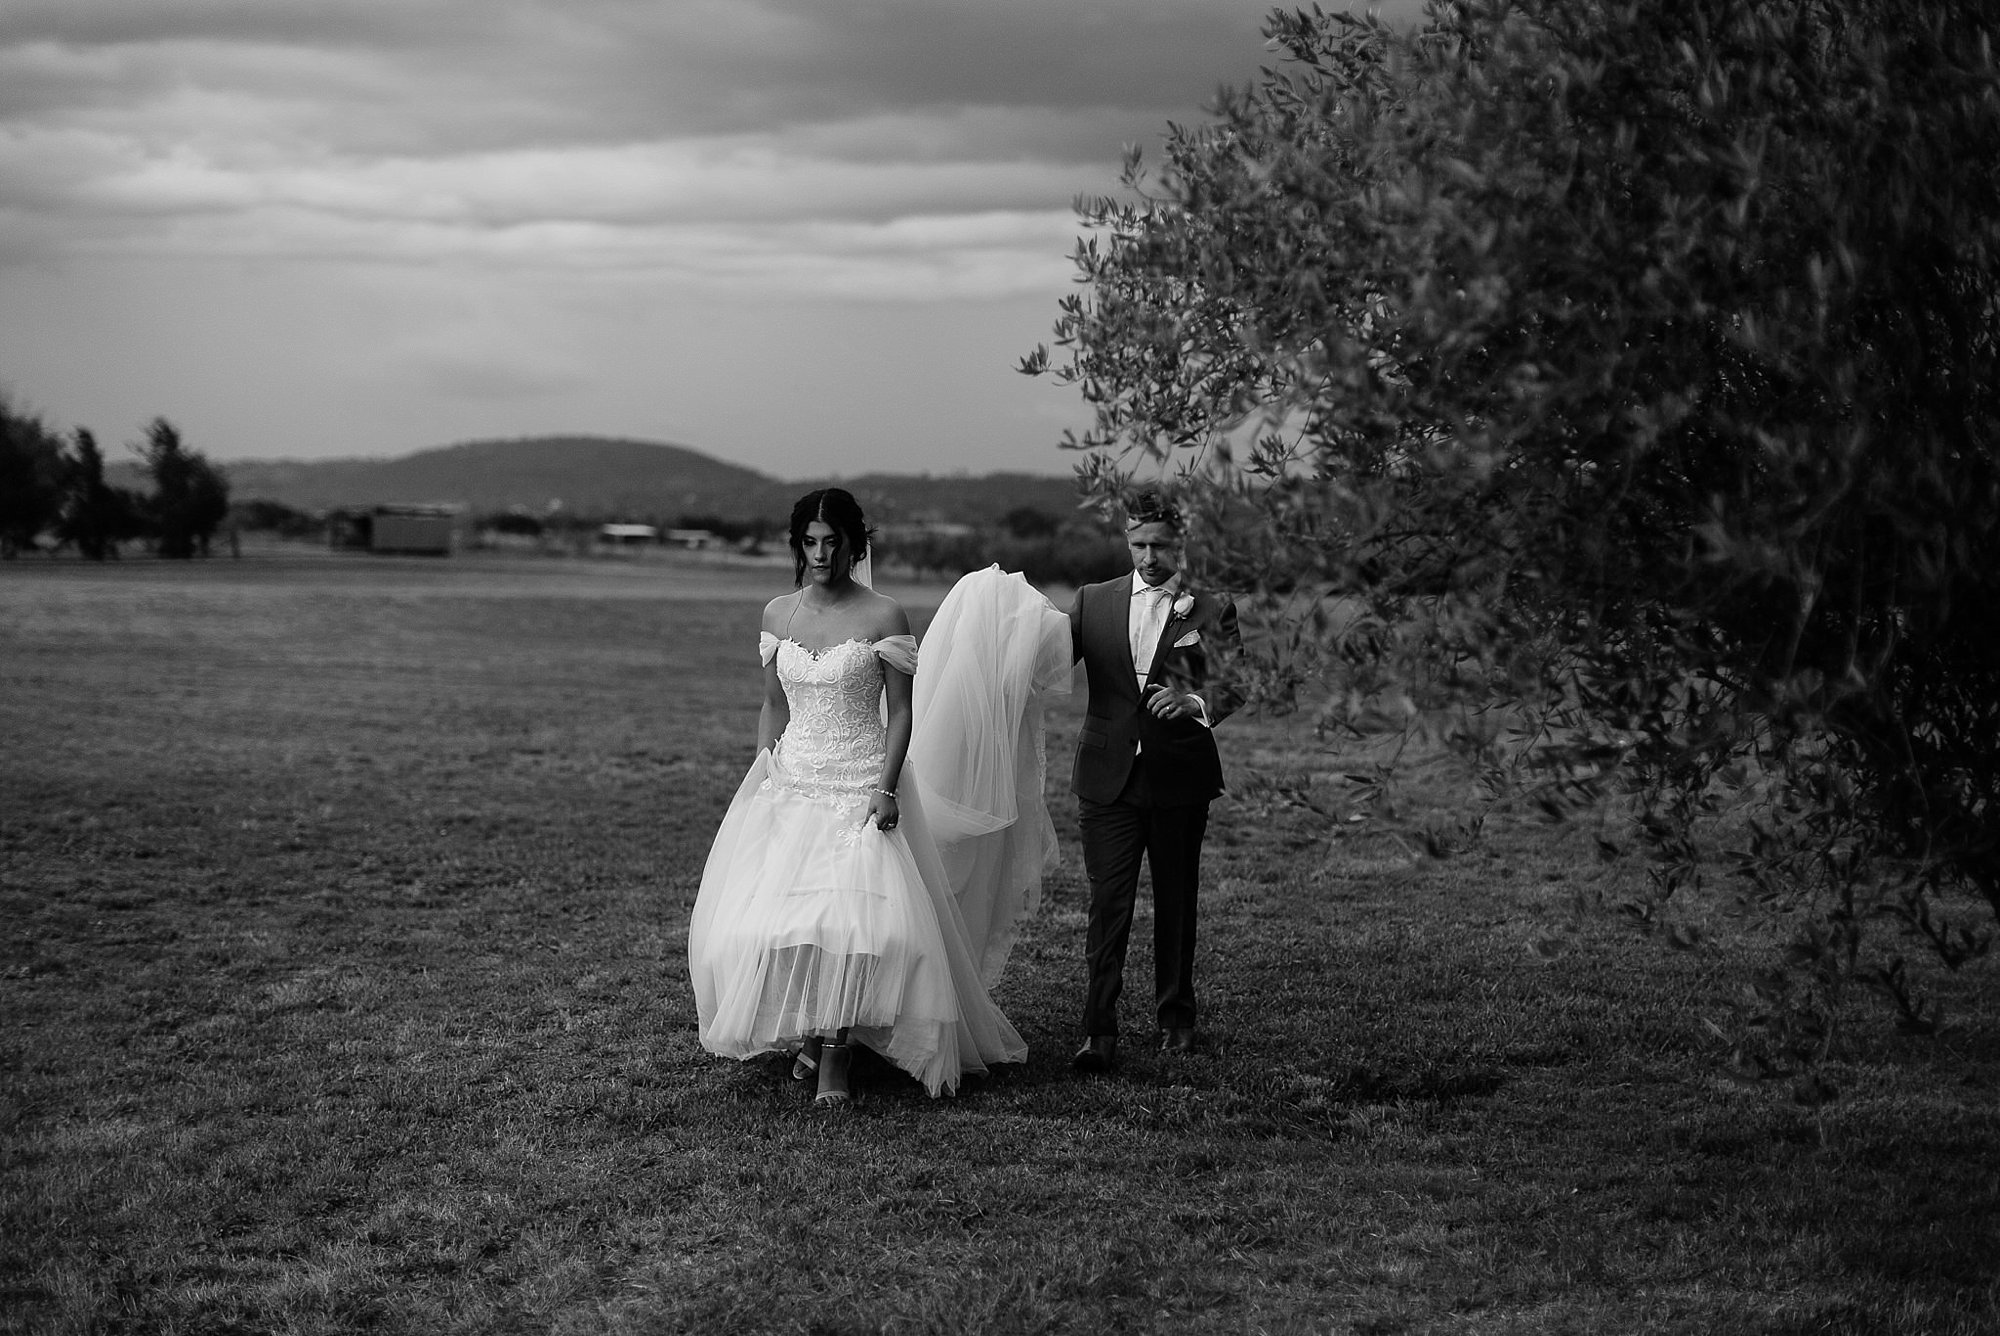 Canberra Portrait Photography,Keepsakephoto by the Keeffes,ACT wedding photographer,ACT weddings,canberra wedding,Canberra Wedding Photographer,Canberra Wedding Photography,canberra weddings,Pialligo Estate,Pialligo Estate wedding,Summer wedding,